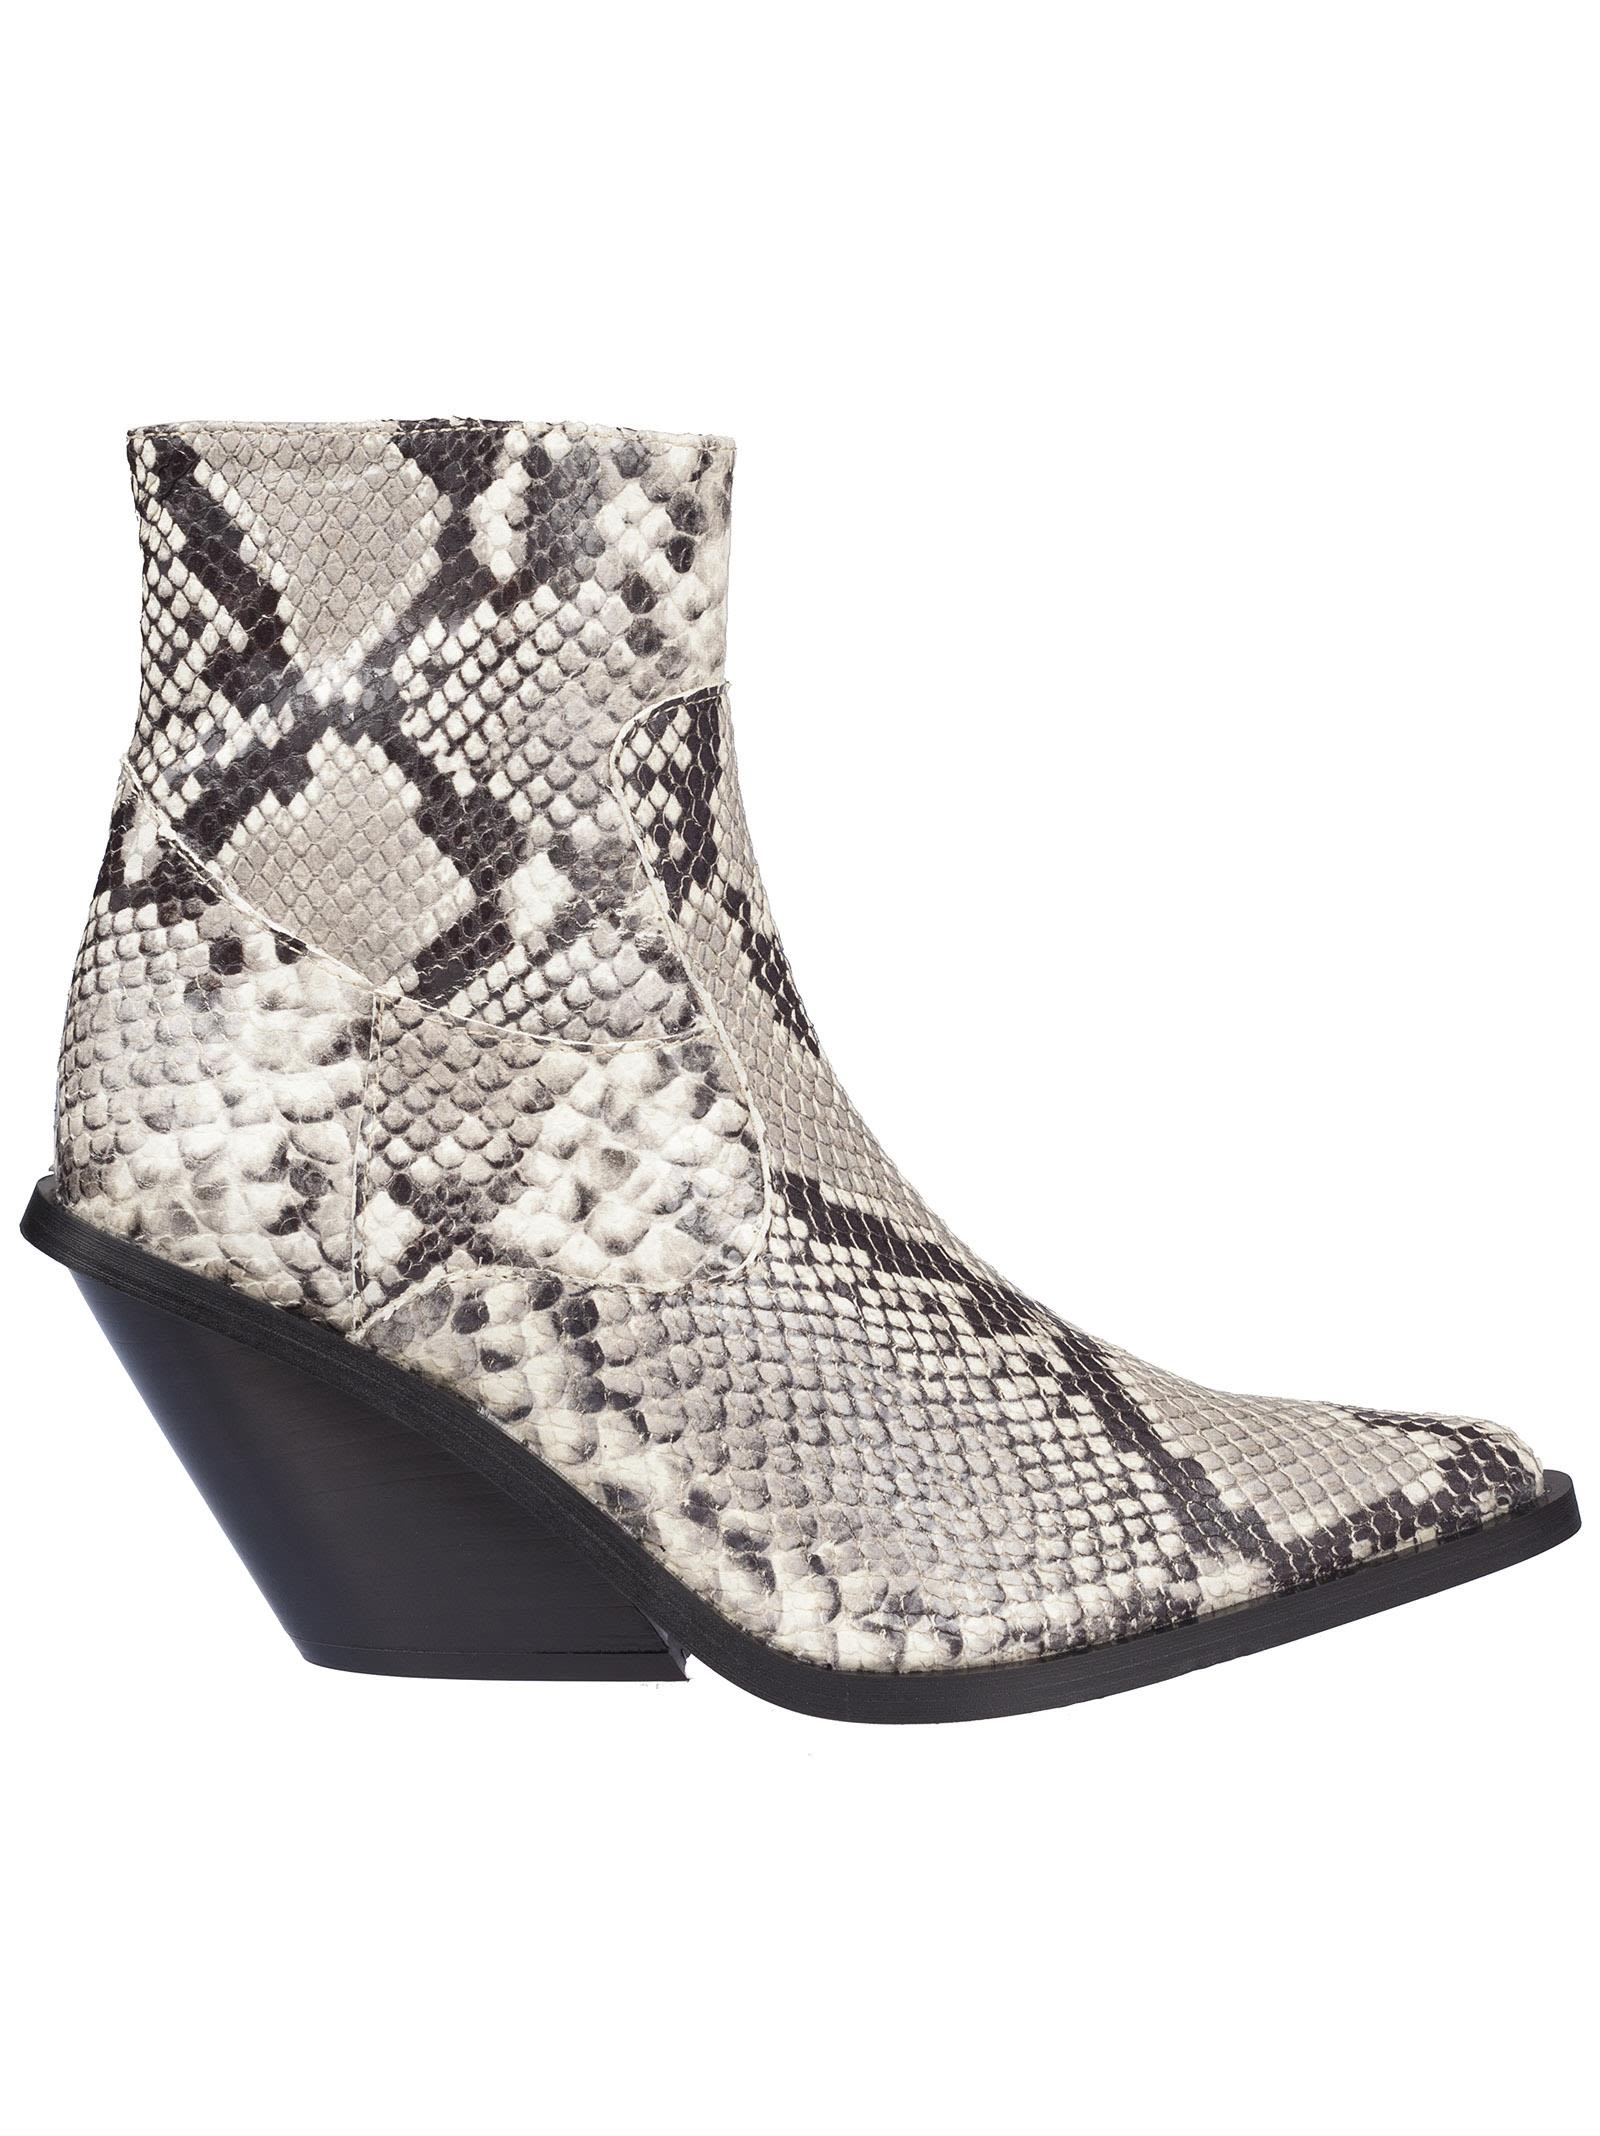 Python Print Ankle Boots in Black